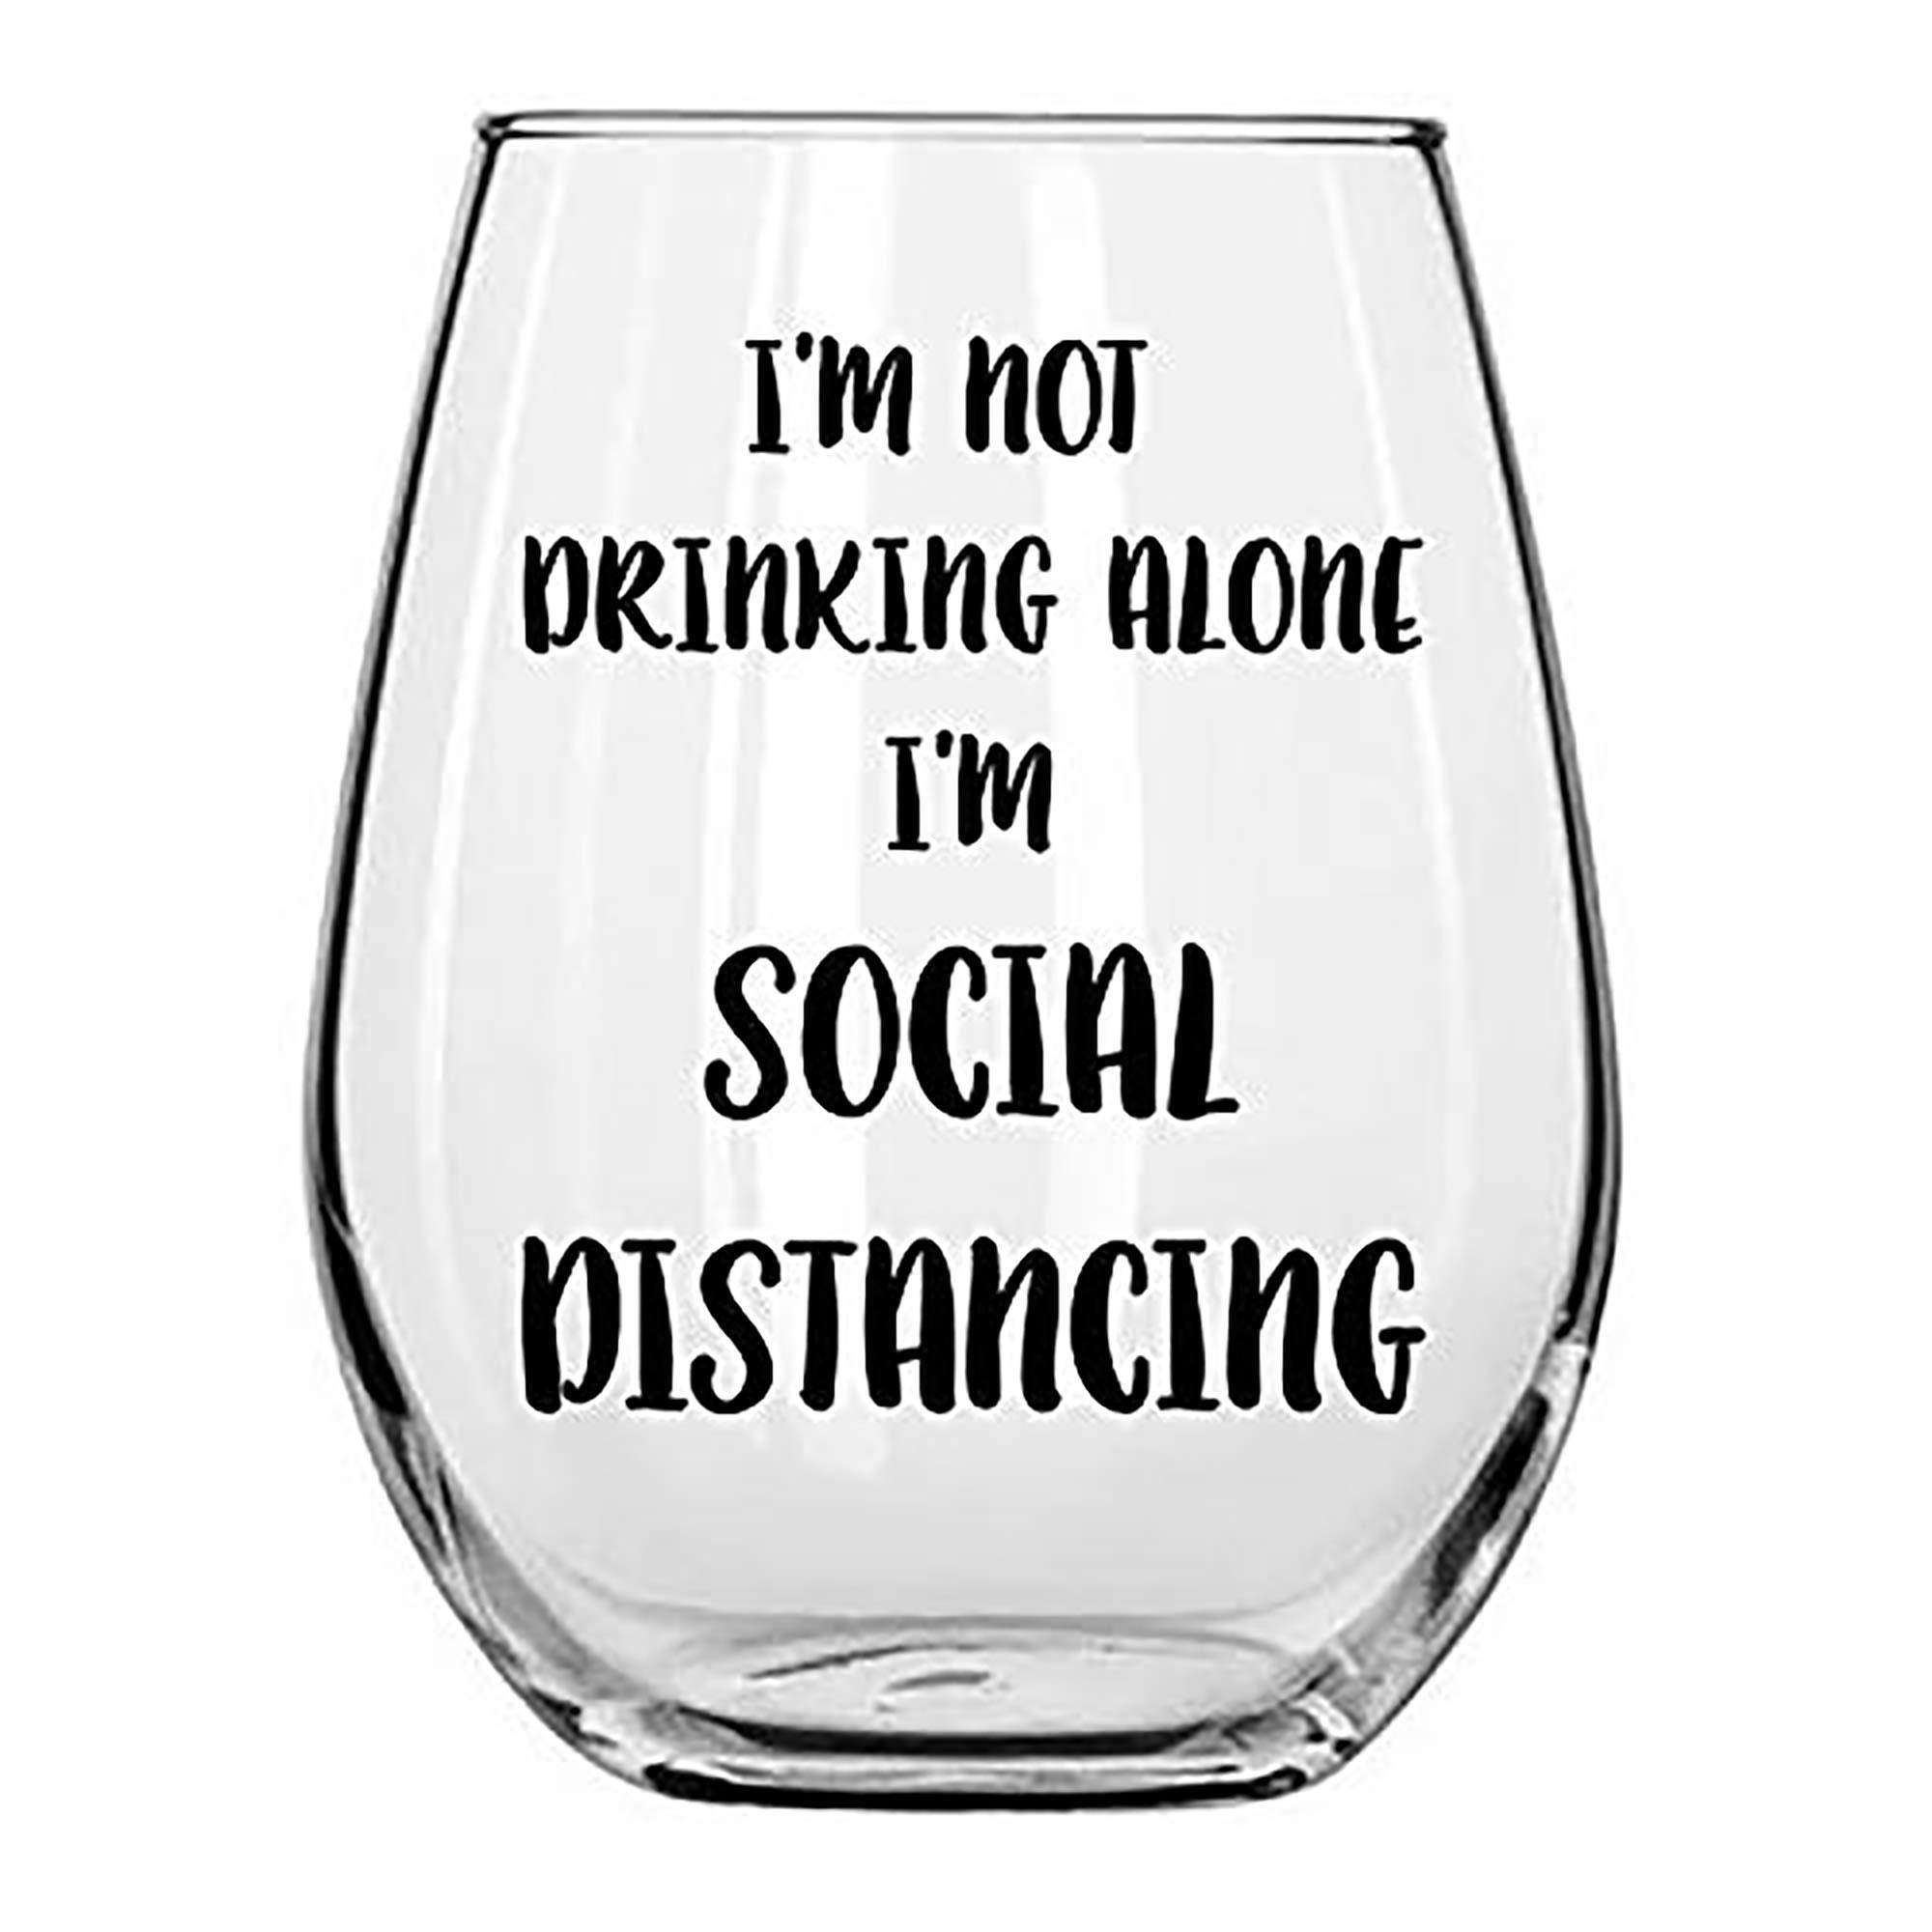 I'm Not Drinking Alone I'm Social Distancing Funny Stemless Glass by Momstir